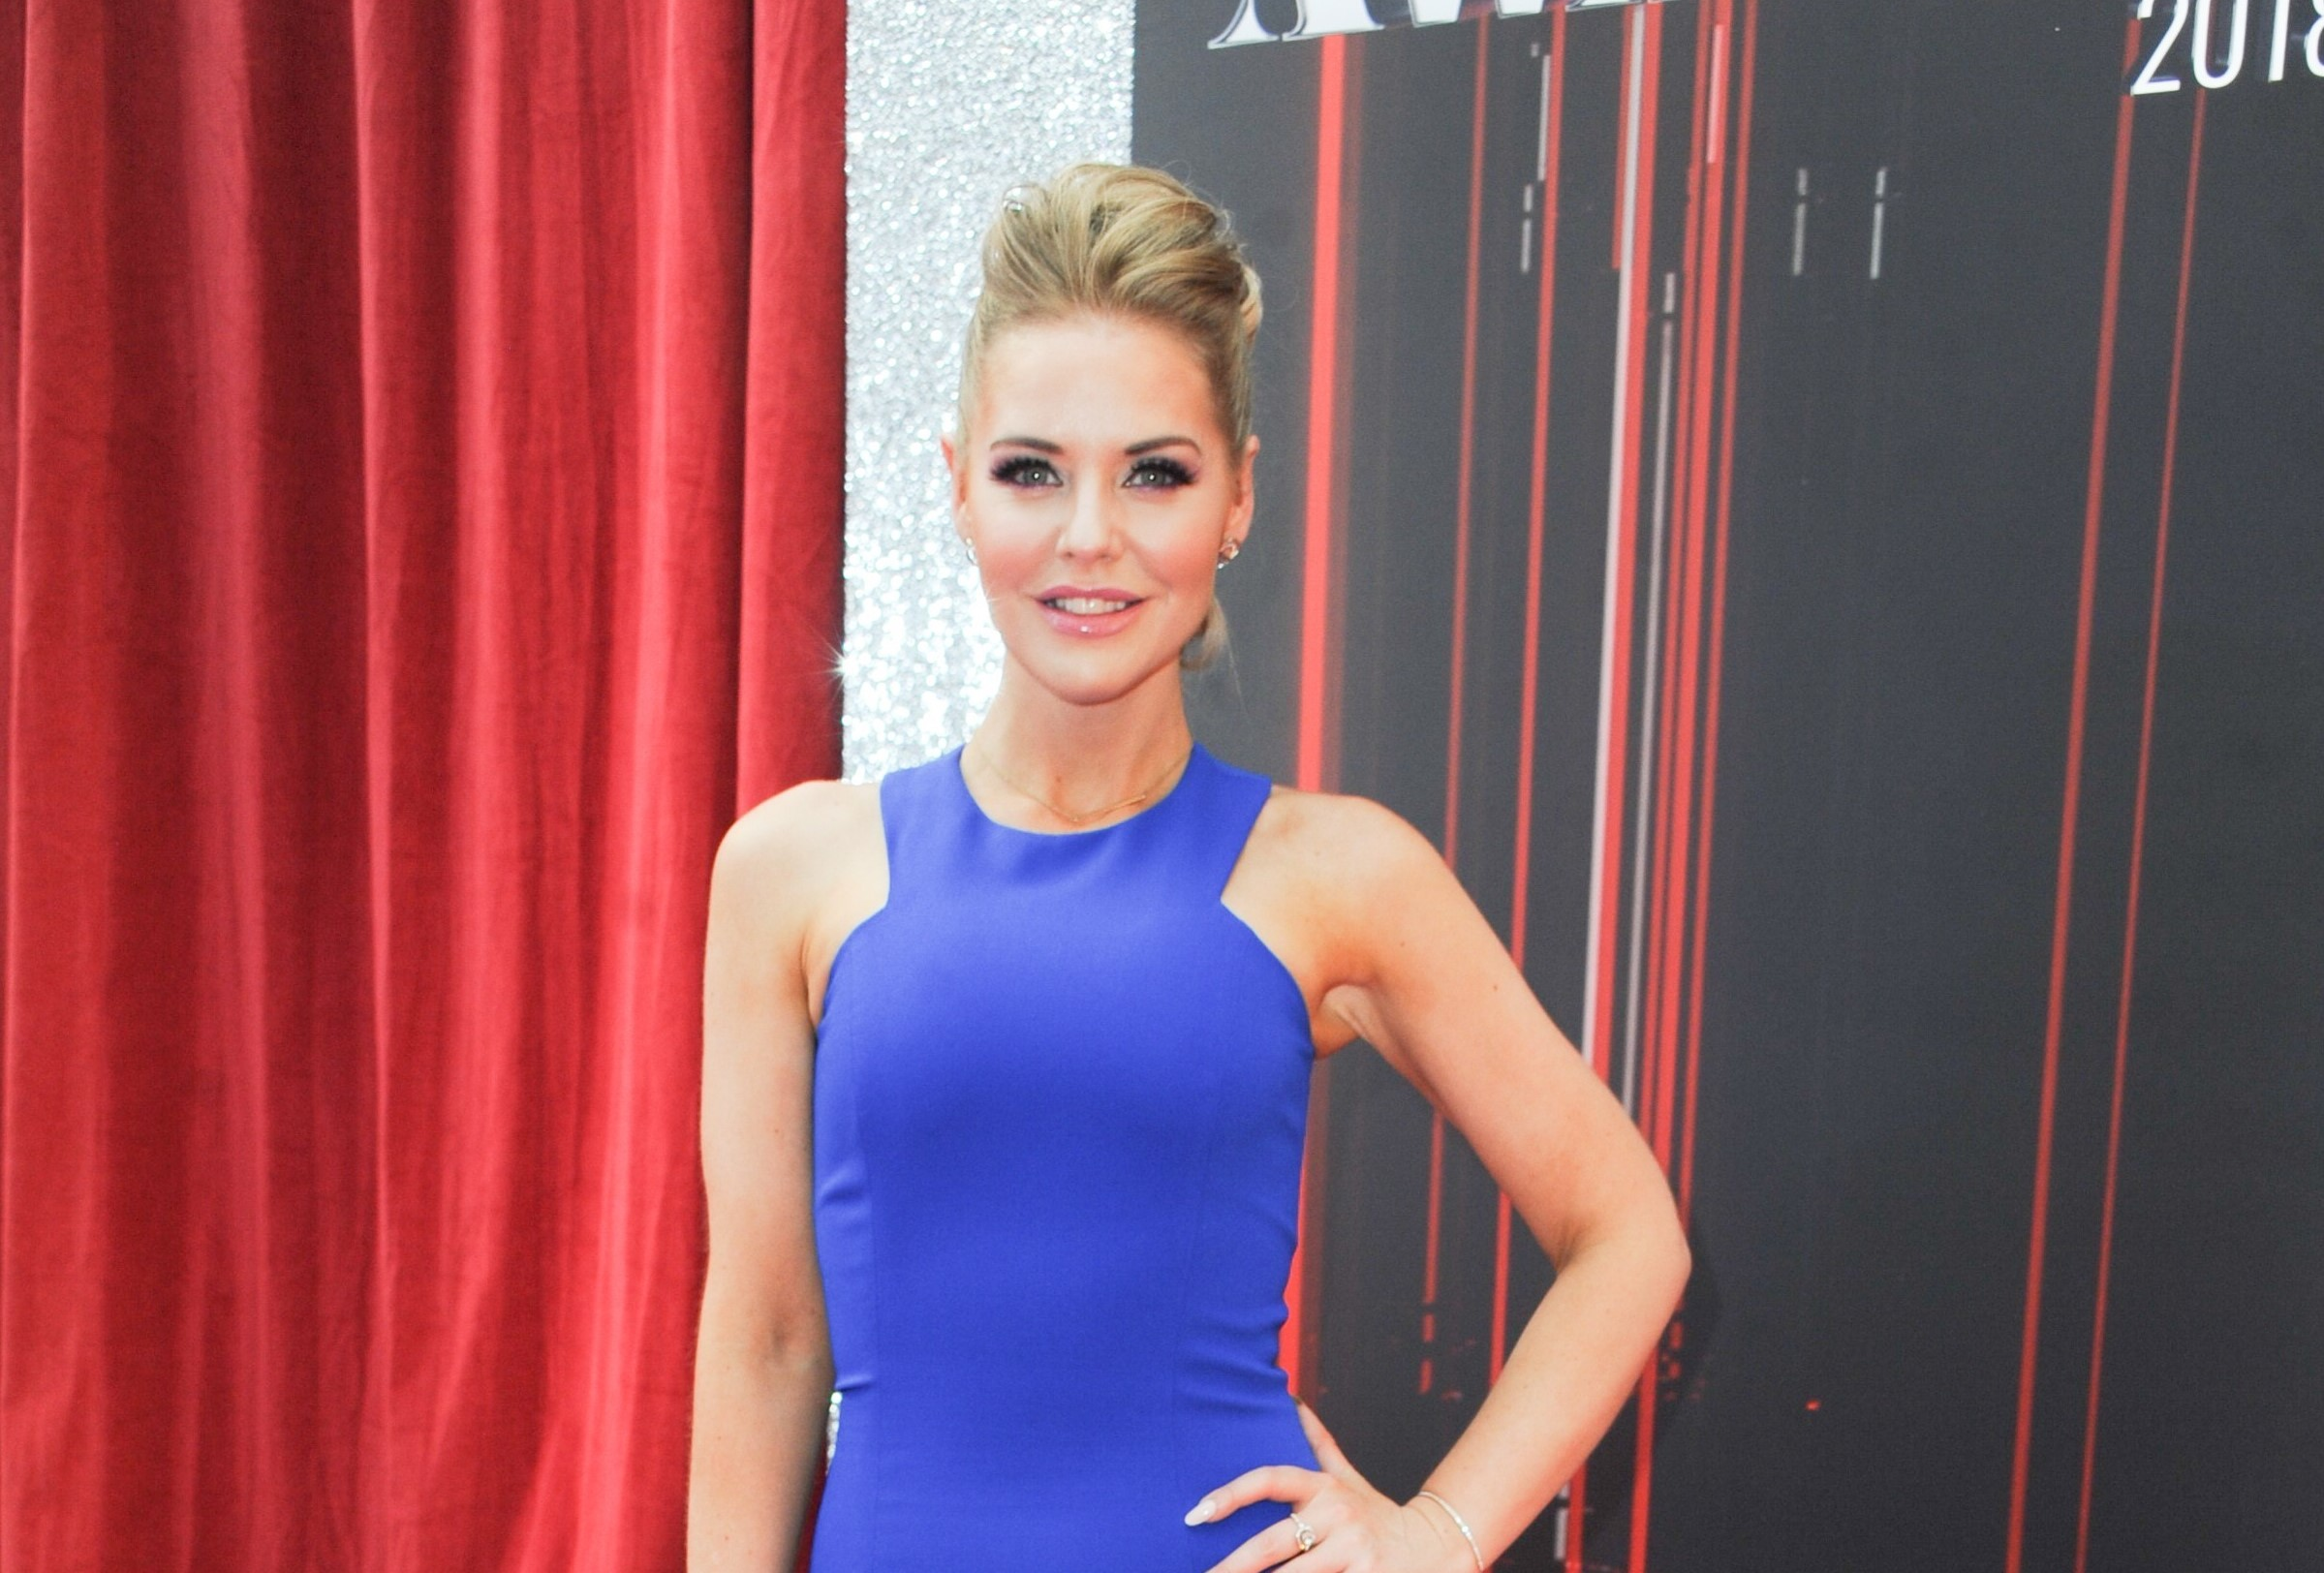 Hollyoaks' Stephanie Waring speaks on past anorexia battle that saw her drop to four-and-a-half stone